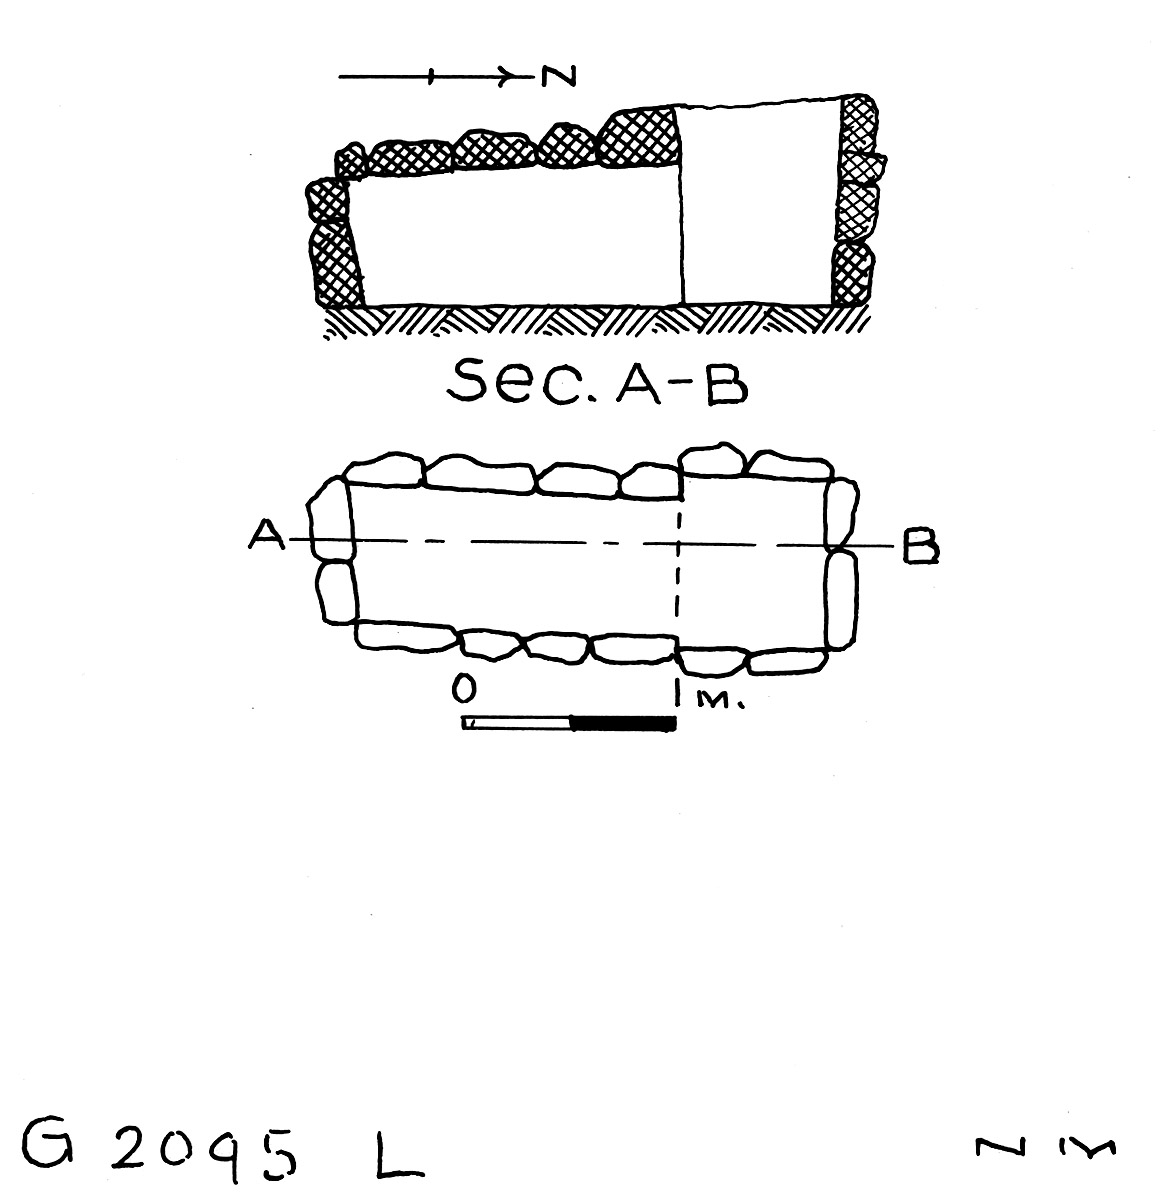 Maps and plans: G 2095, Shaft L